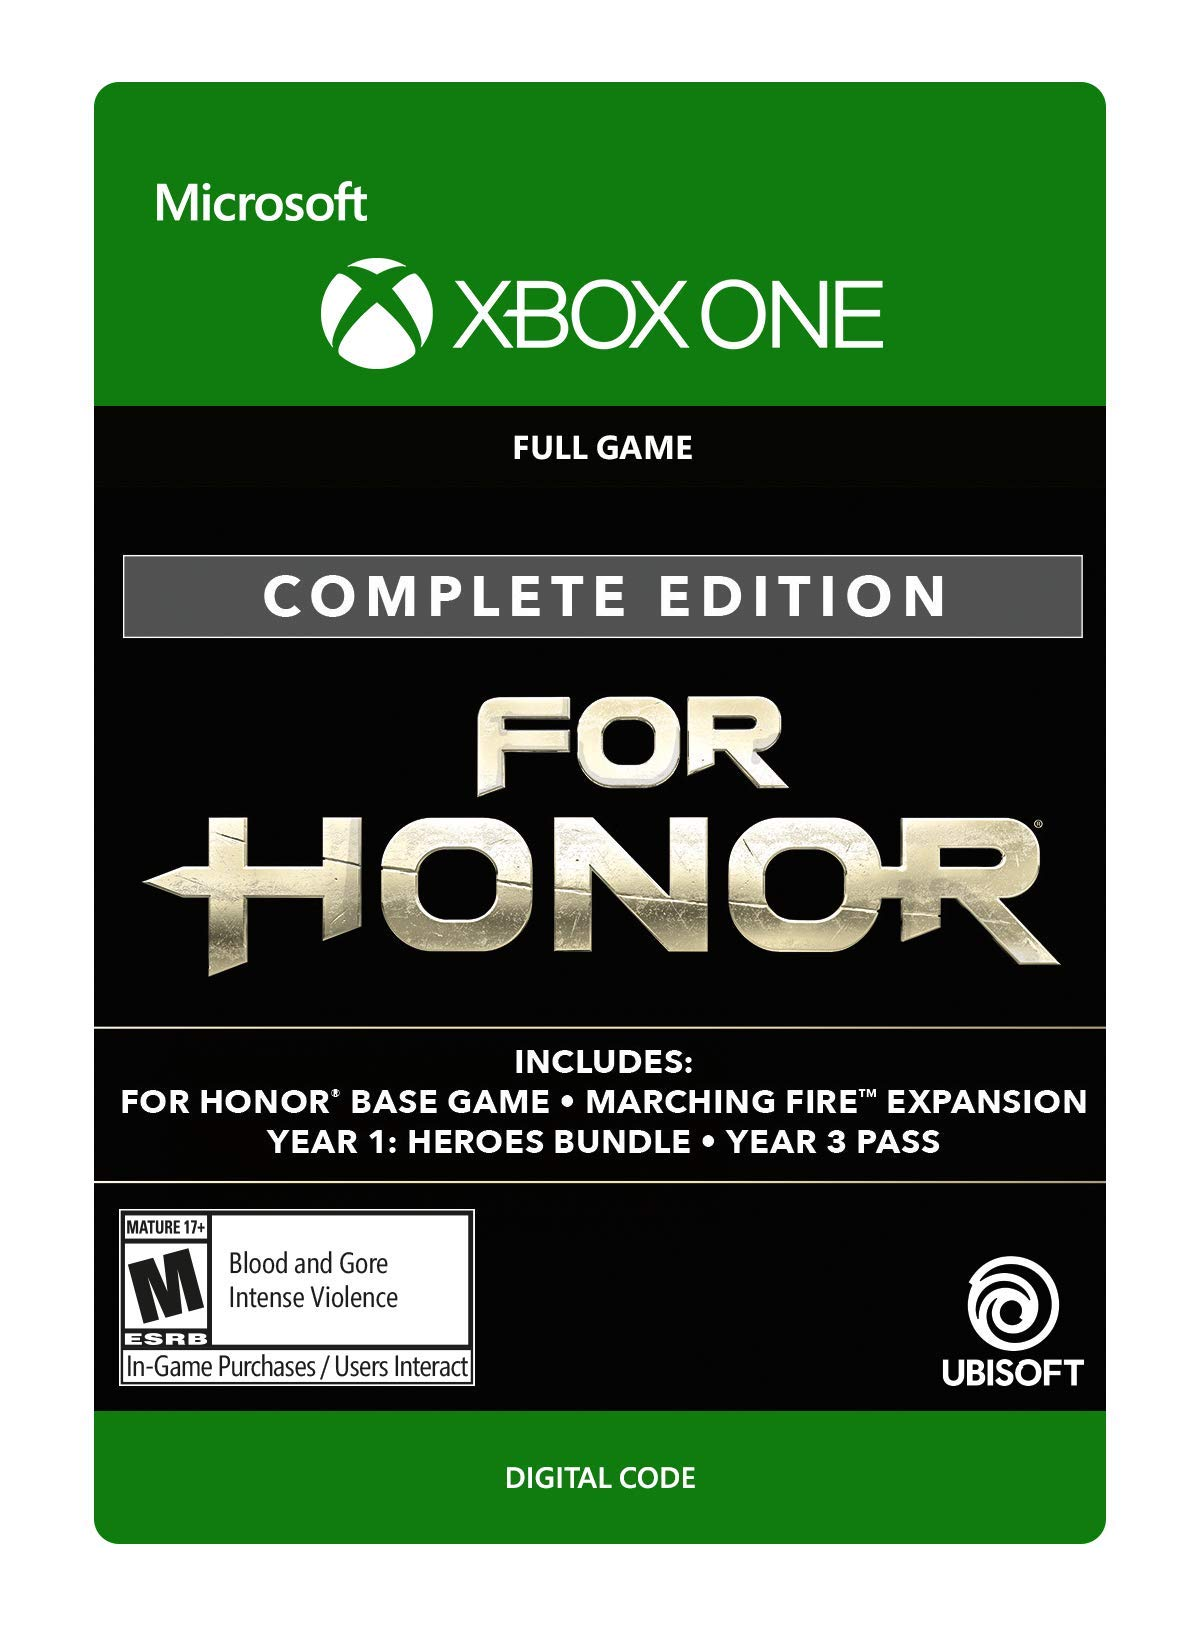 For Honor Complete Edition - Xbox One [Digital Code] by Ubisoft (Image #1)